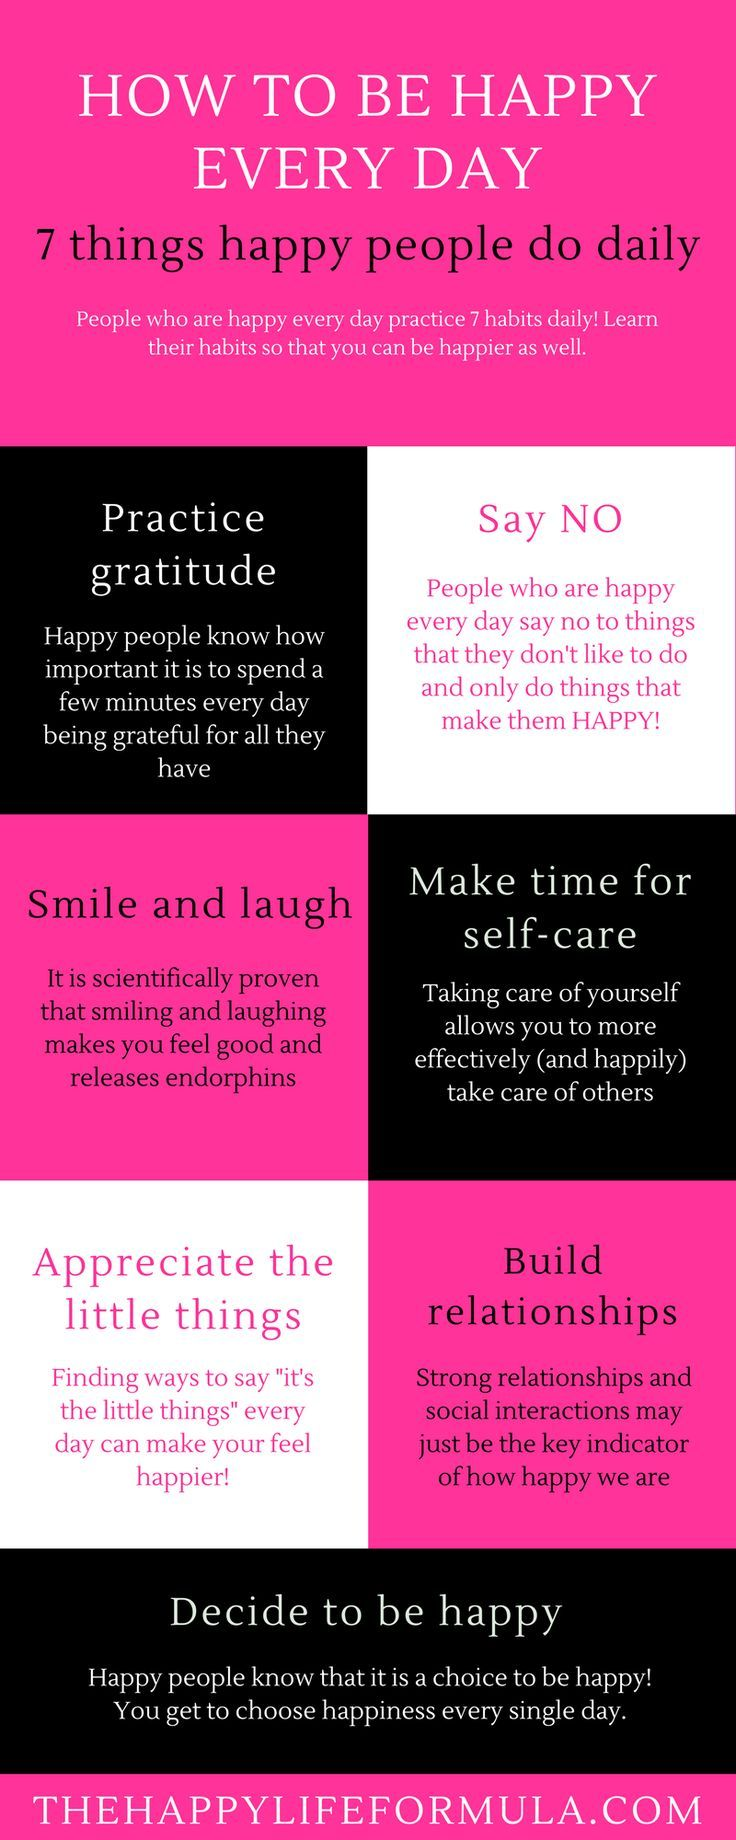 The seven things that happy people do daily! Click through to read in more detail how you can apply each of these areas to your life to start being happy every day! Happiness hacks, happy life, self-care, gratitude, decide to be happy, appreciate the little things, build relationships, say no, smile and laugh.